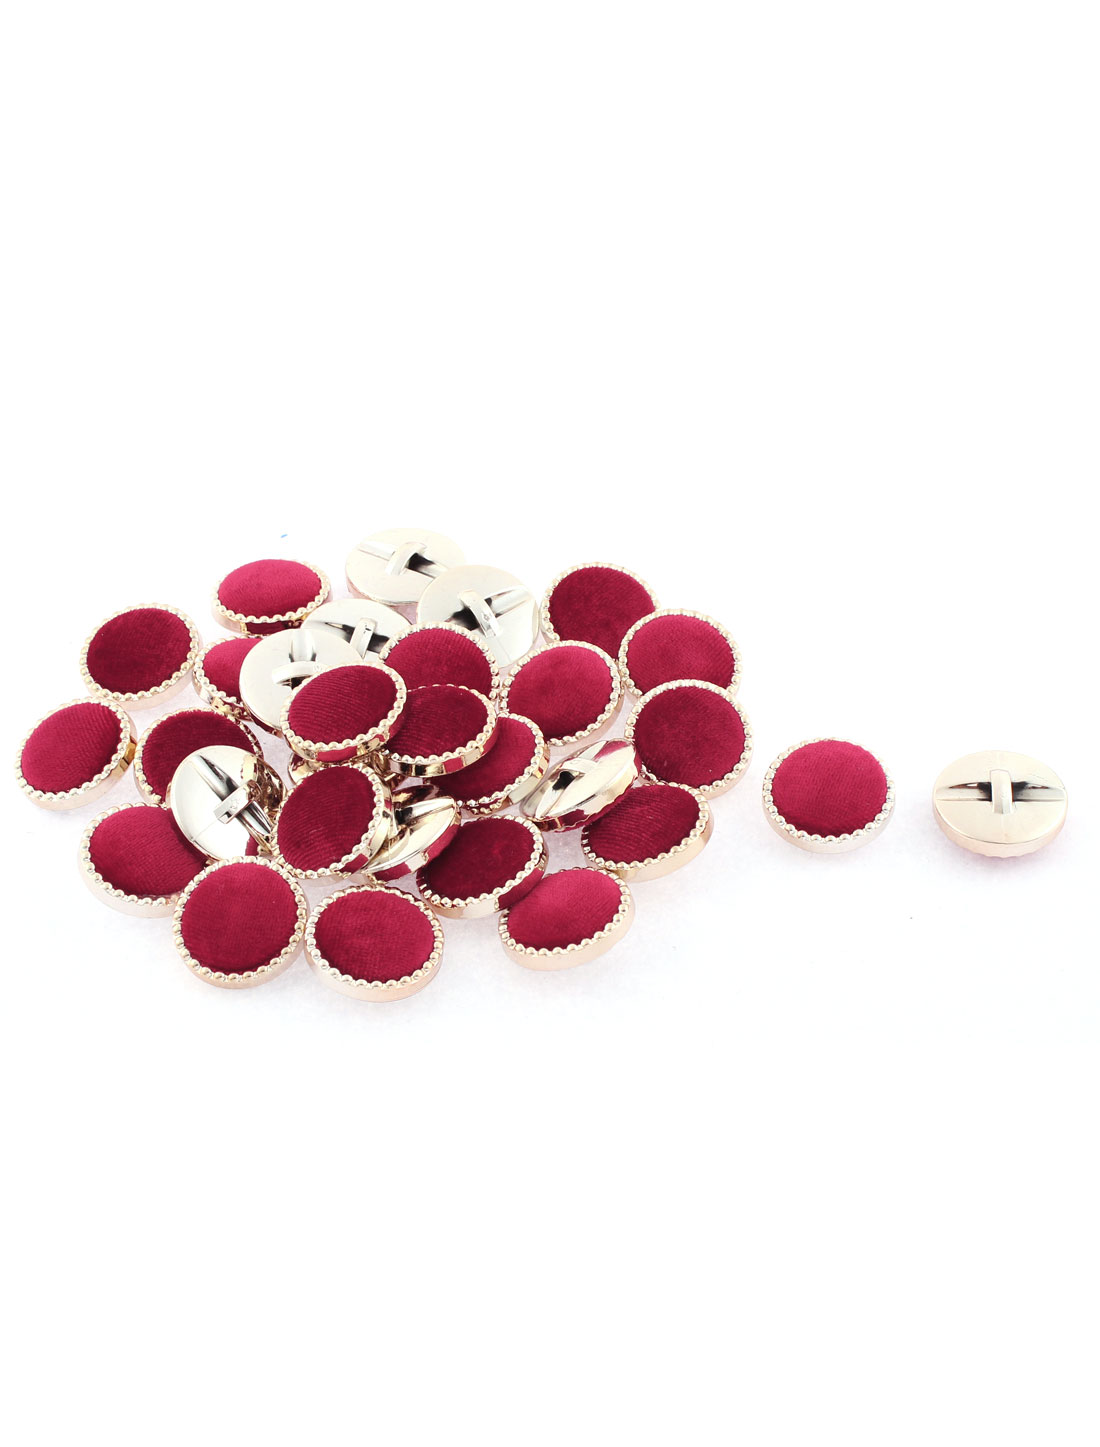 30 Pcs Round Sewing Buttons 25mm Dia Burgundy for Clothing Coat Jacket